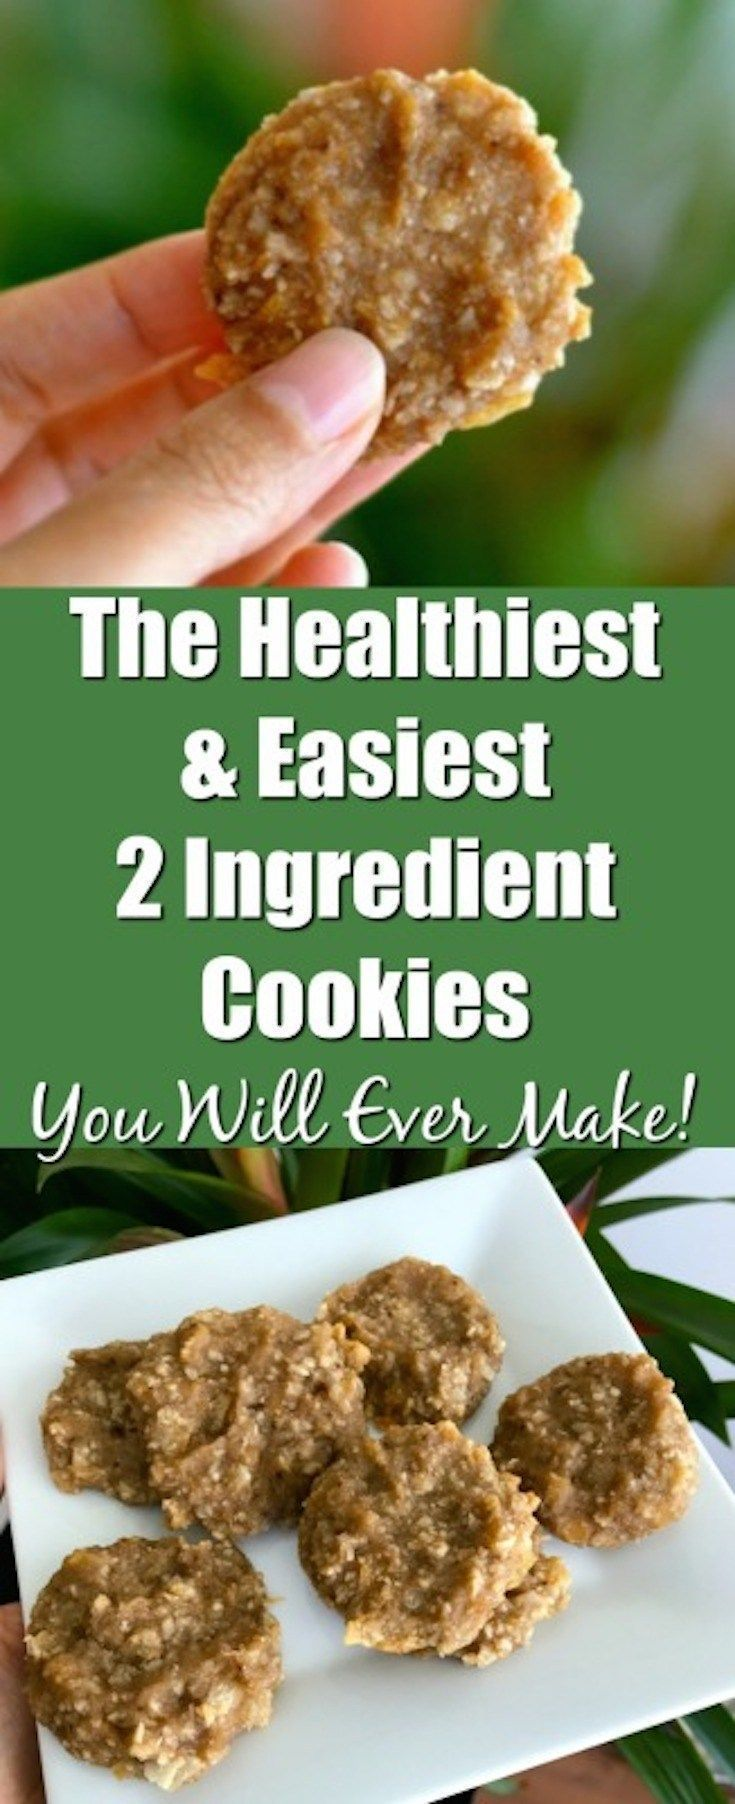 The easiest and healthiest 2 ingredient cookies! Perfect recipe. #2ingredient #coconut #banana #baking #cookies #glutenfree #easyrecipes #healthy